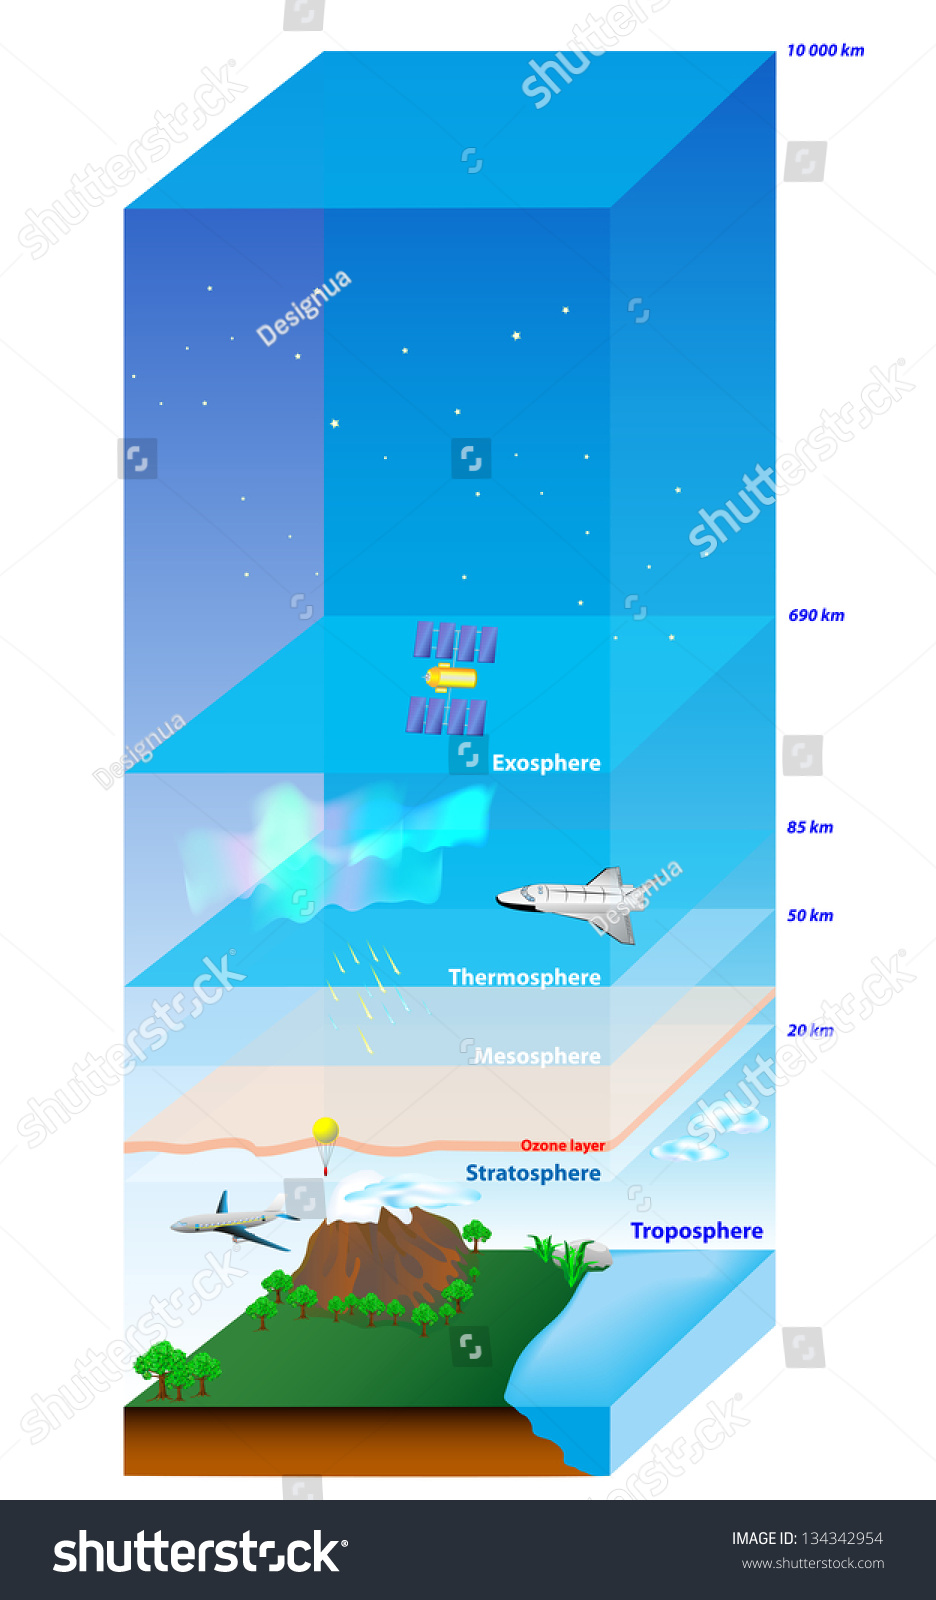 atmosphere of earth layer vector diagram 134342954 shutterstock : diagram of atmosphere - findchart.co